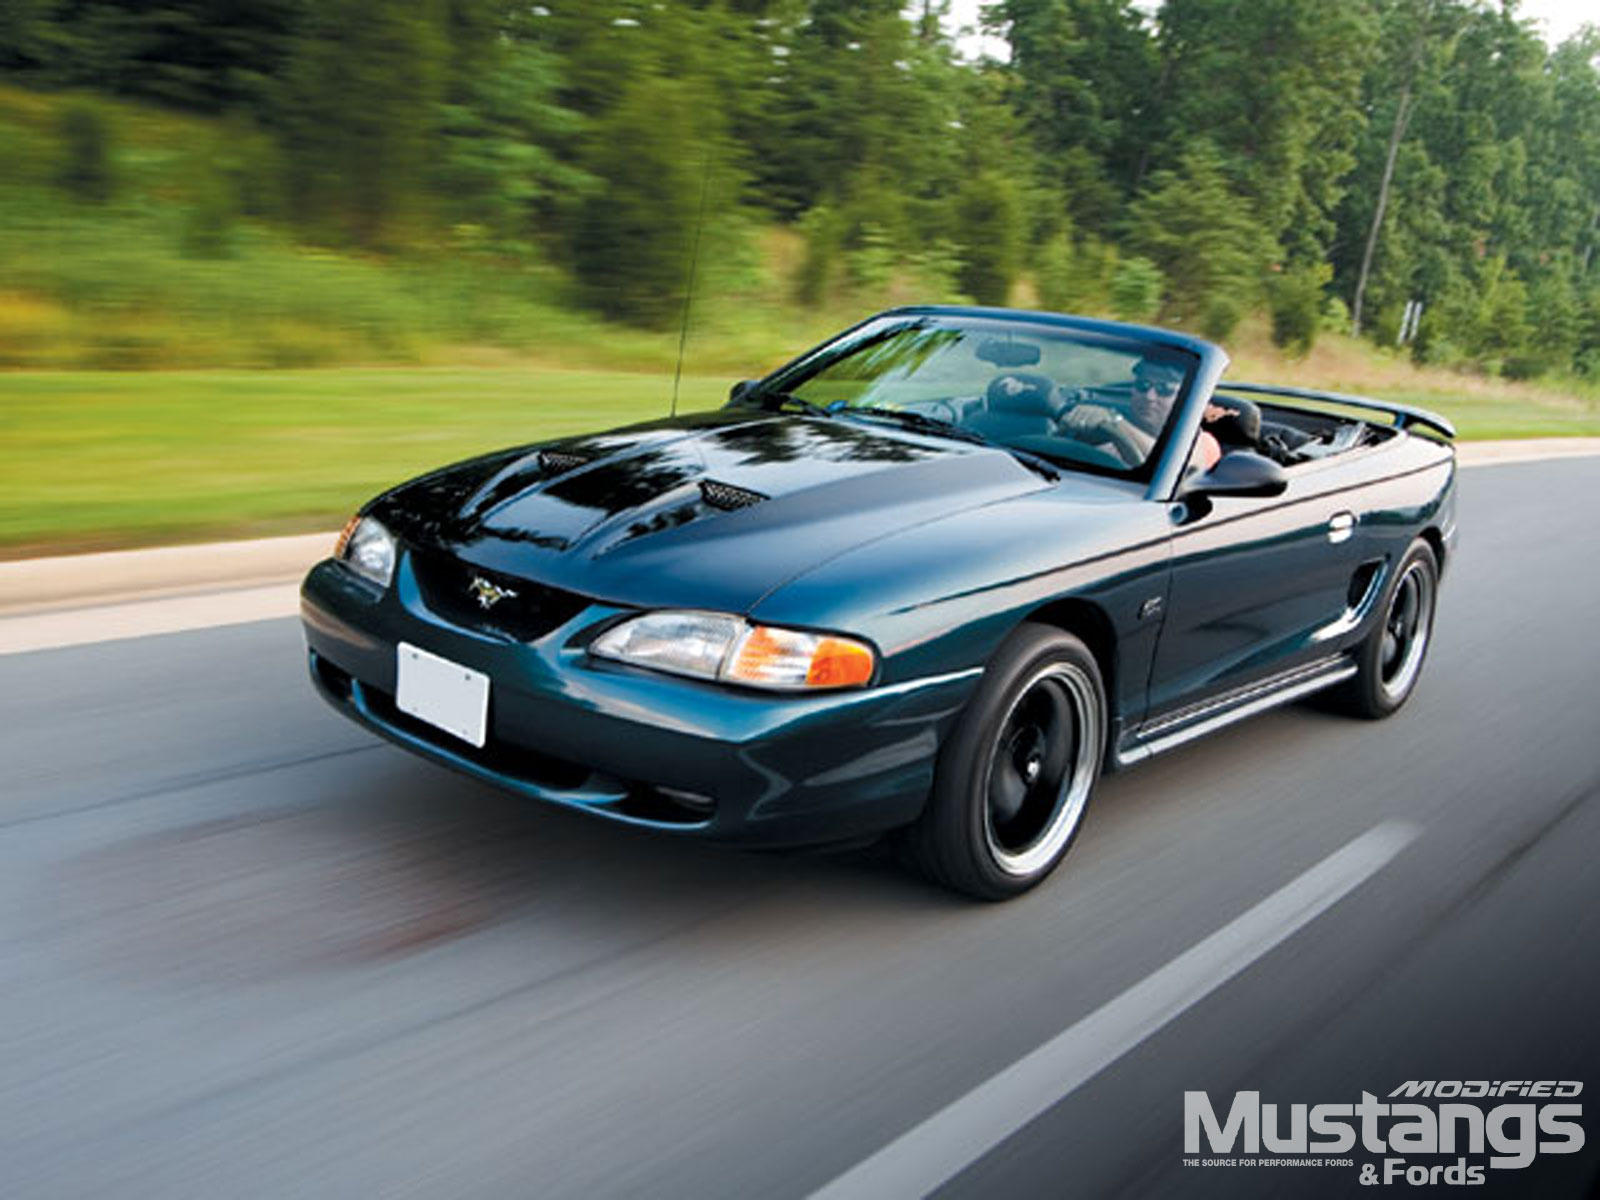 1995 Ford Mustang #10